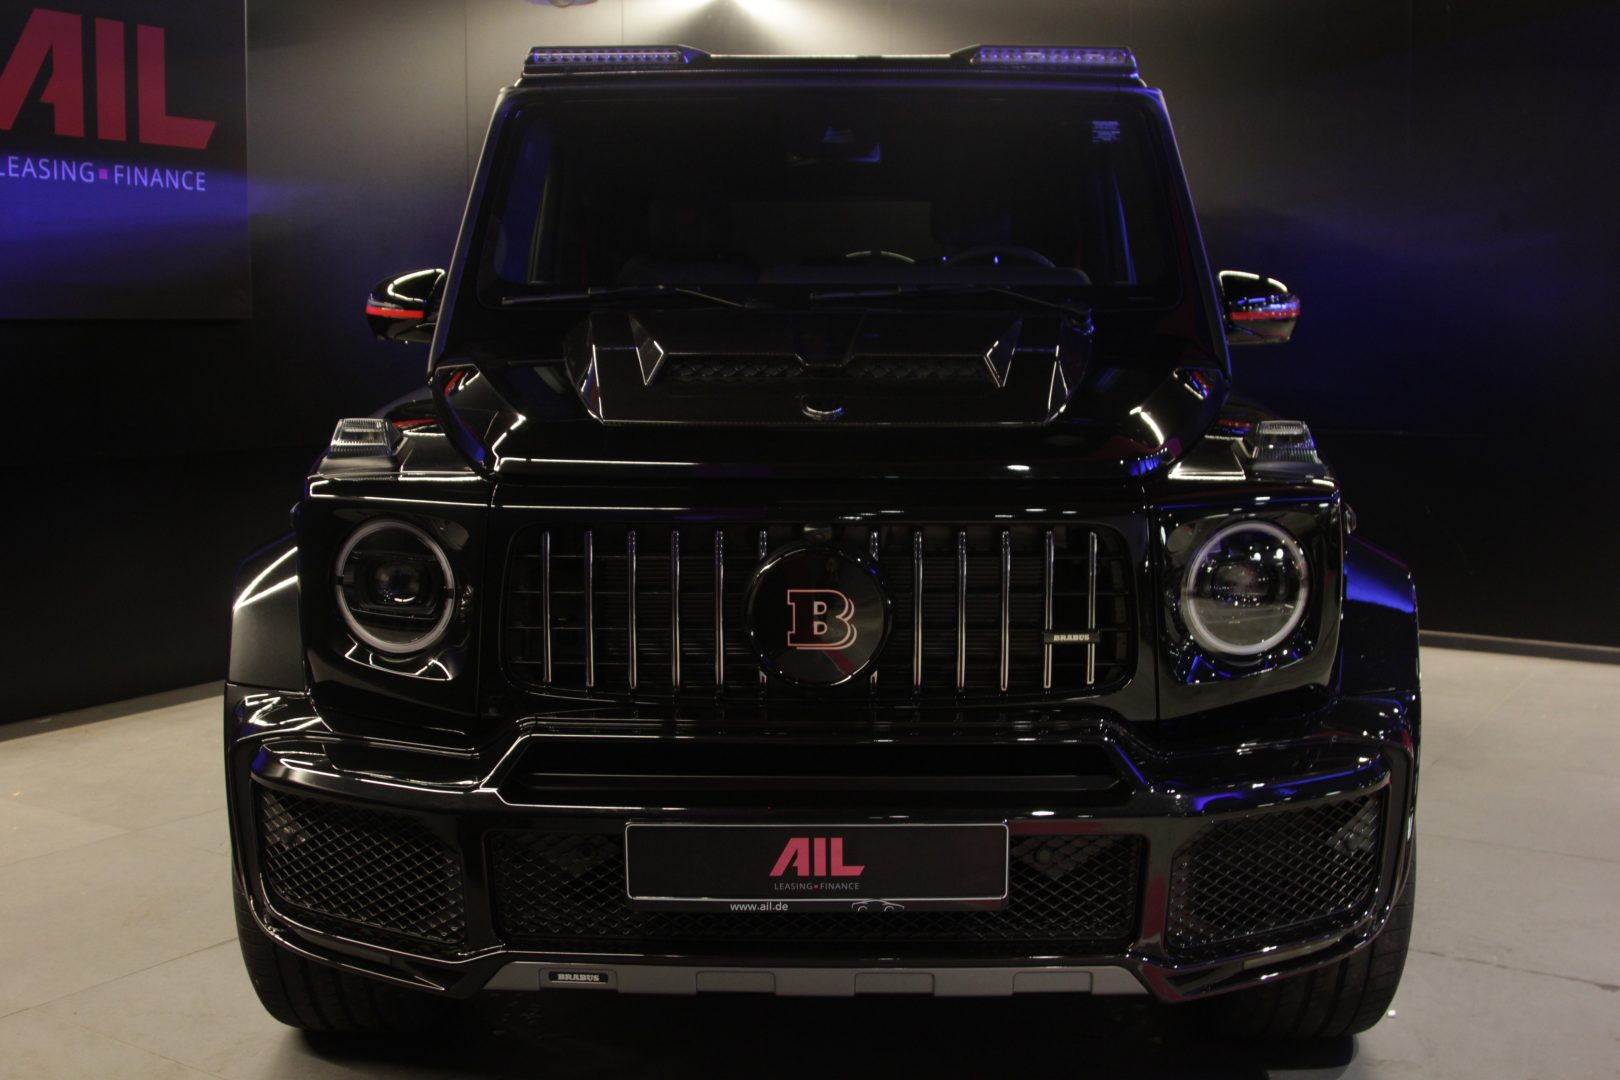 AIL Mercedes-Benz G63 Edition1 BRABUS 800 10